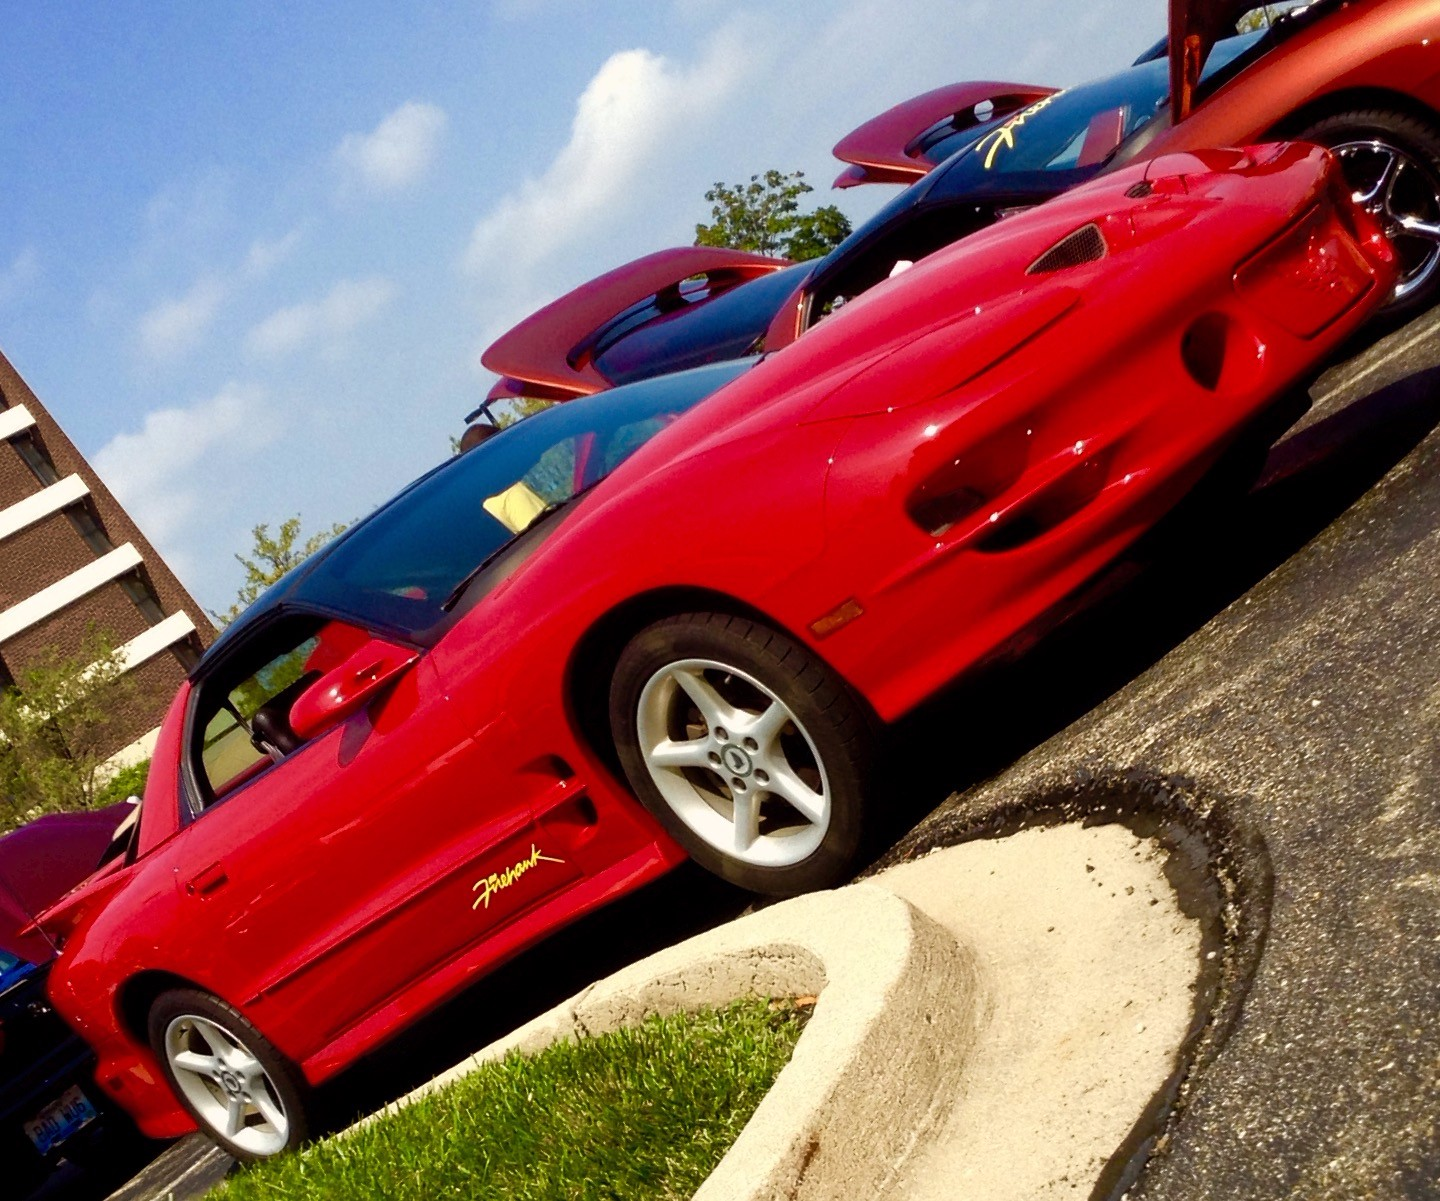 fourth gen Firehawk